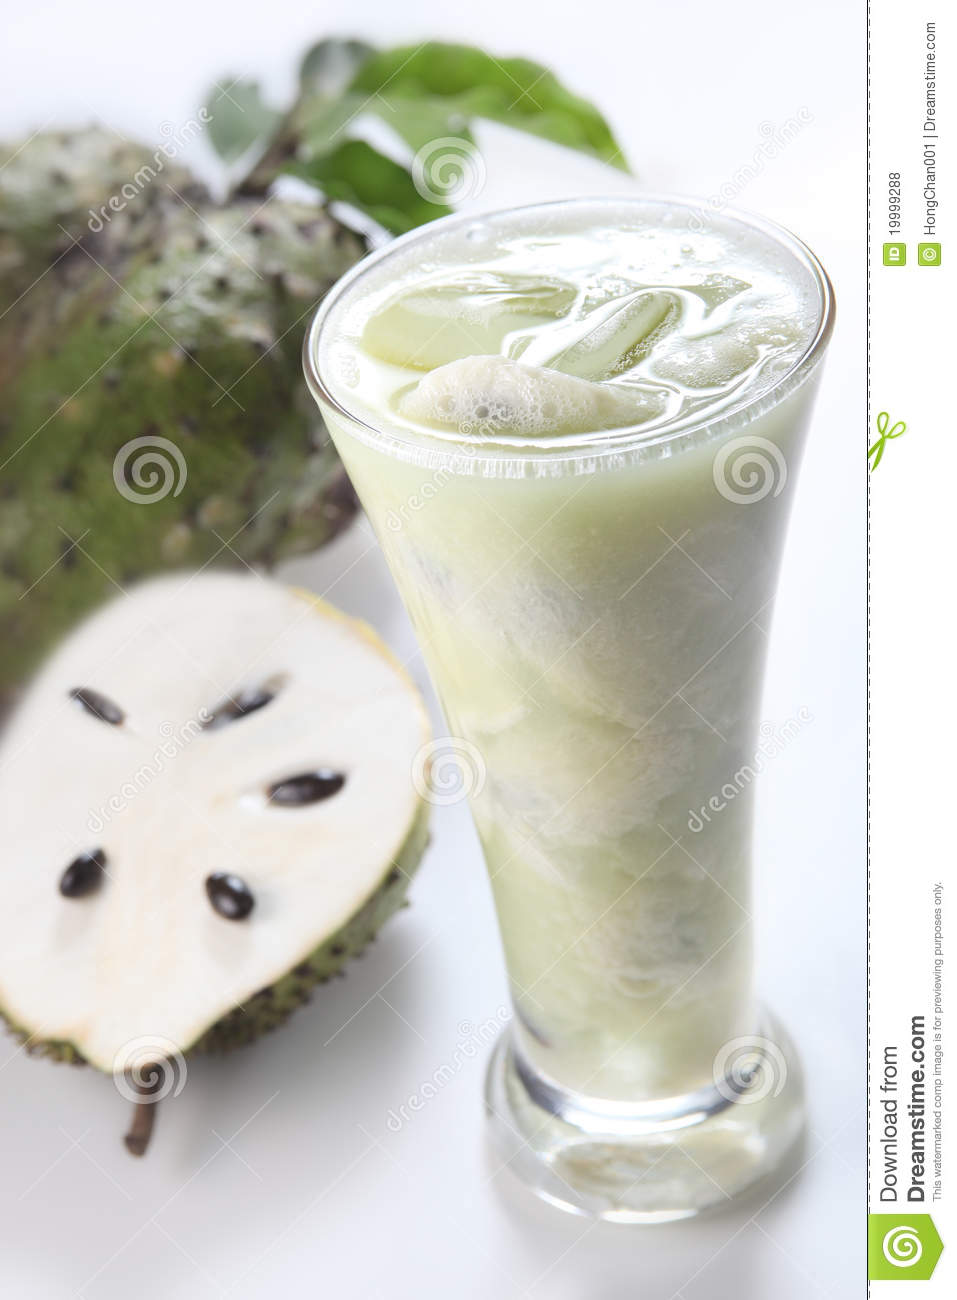 Suco de fruta do Soursop